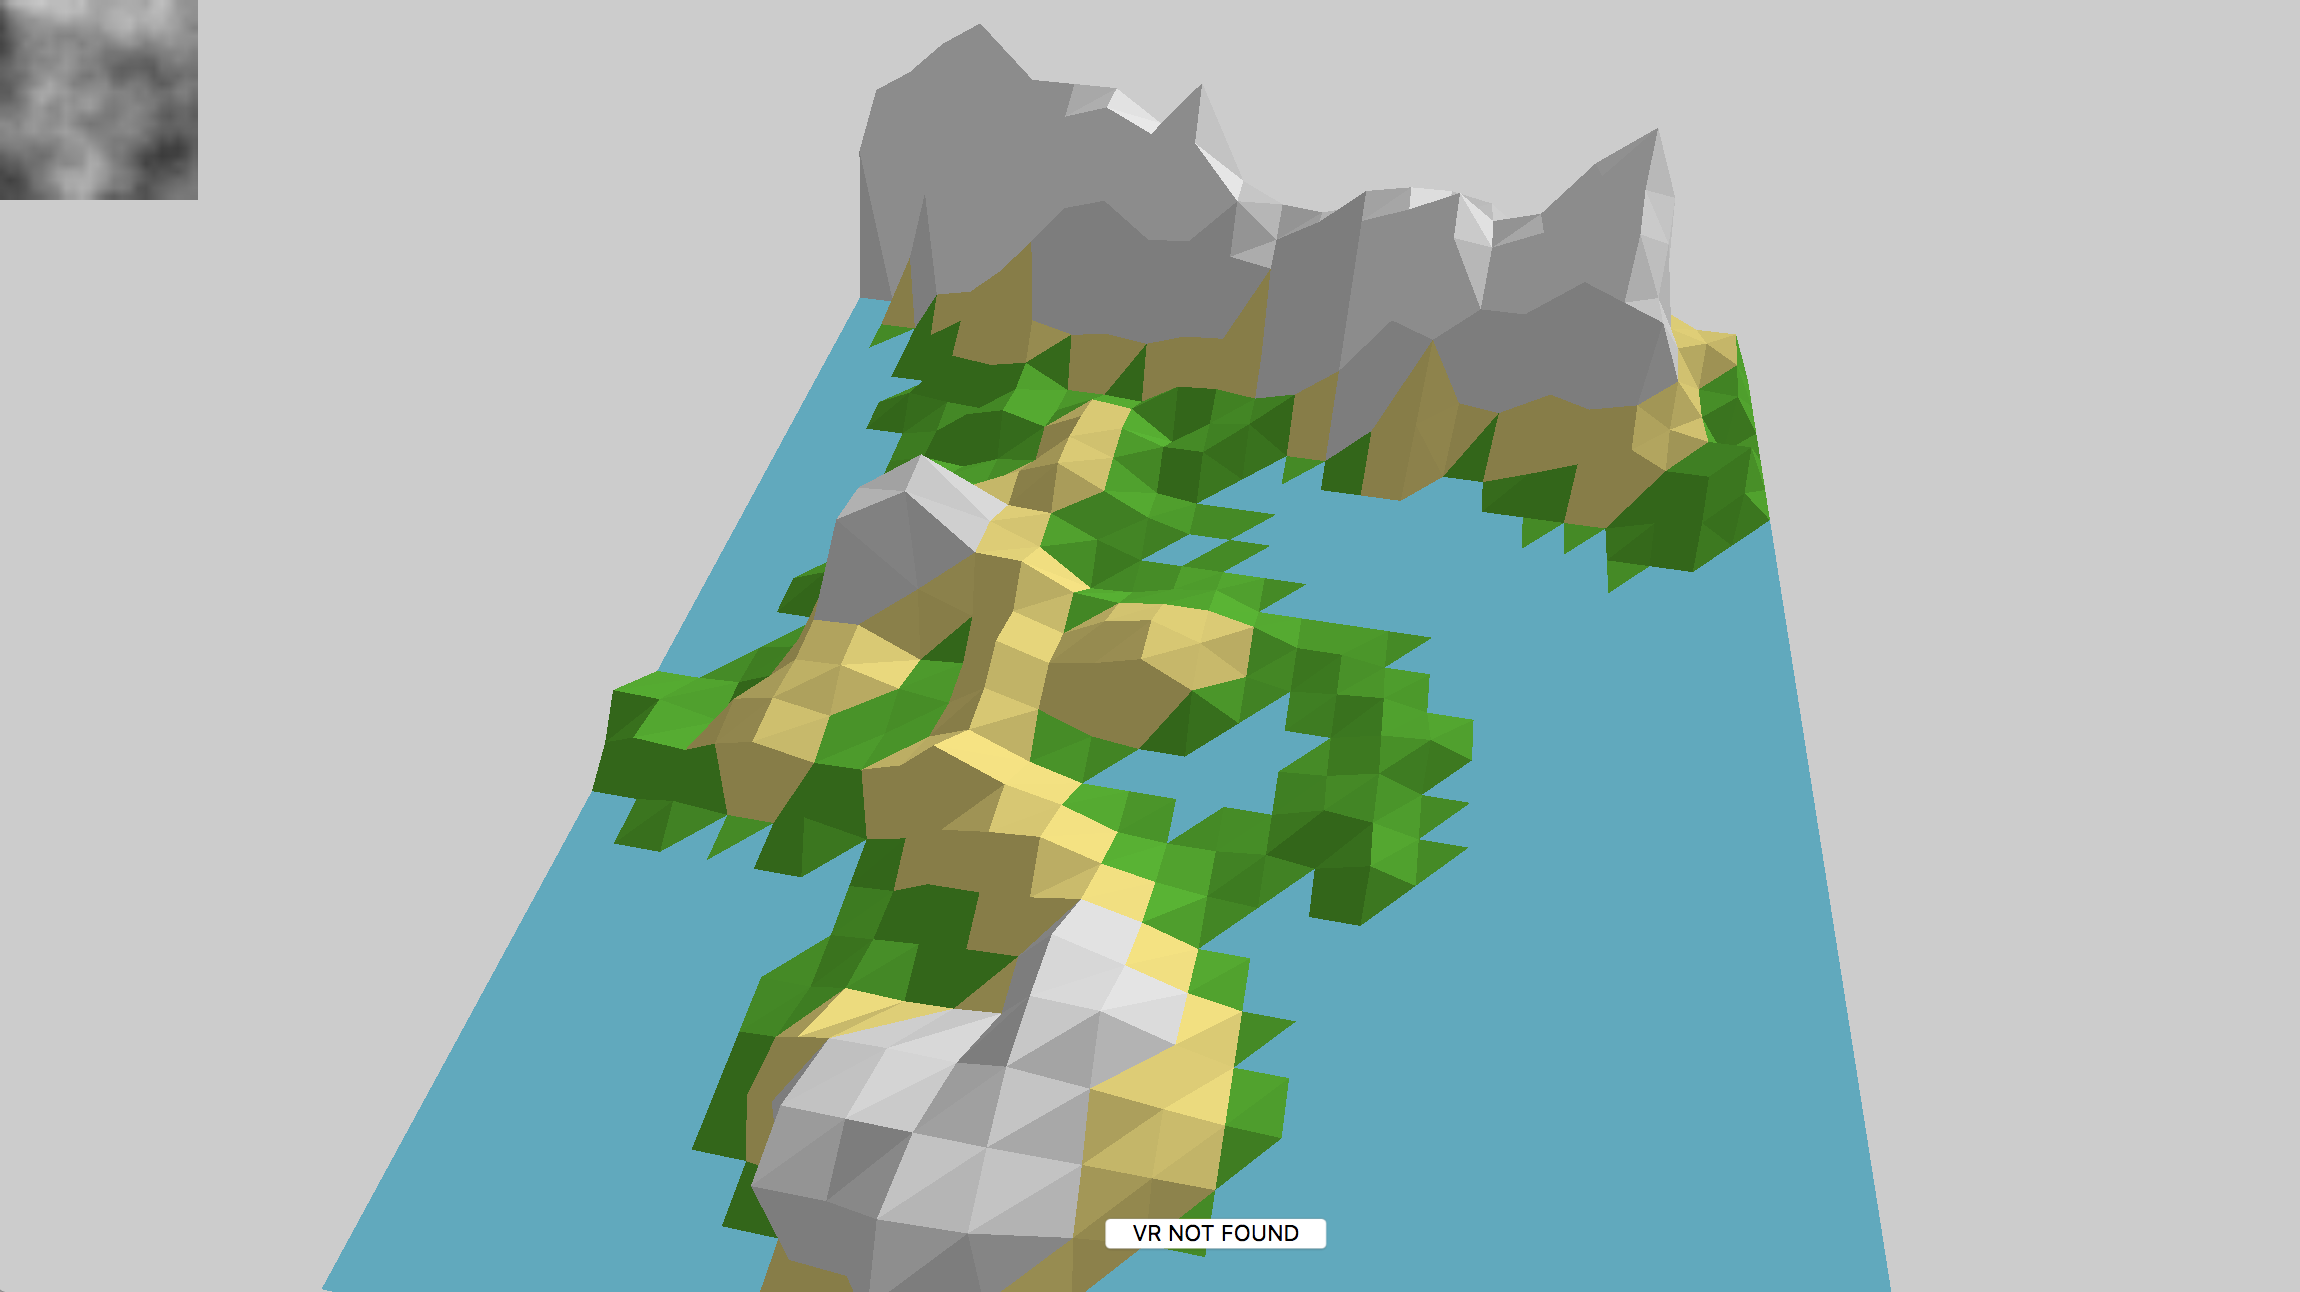 Low Poly style Terrain Generation - Josh Marinacci - Medium